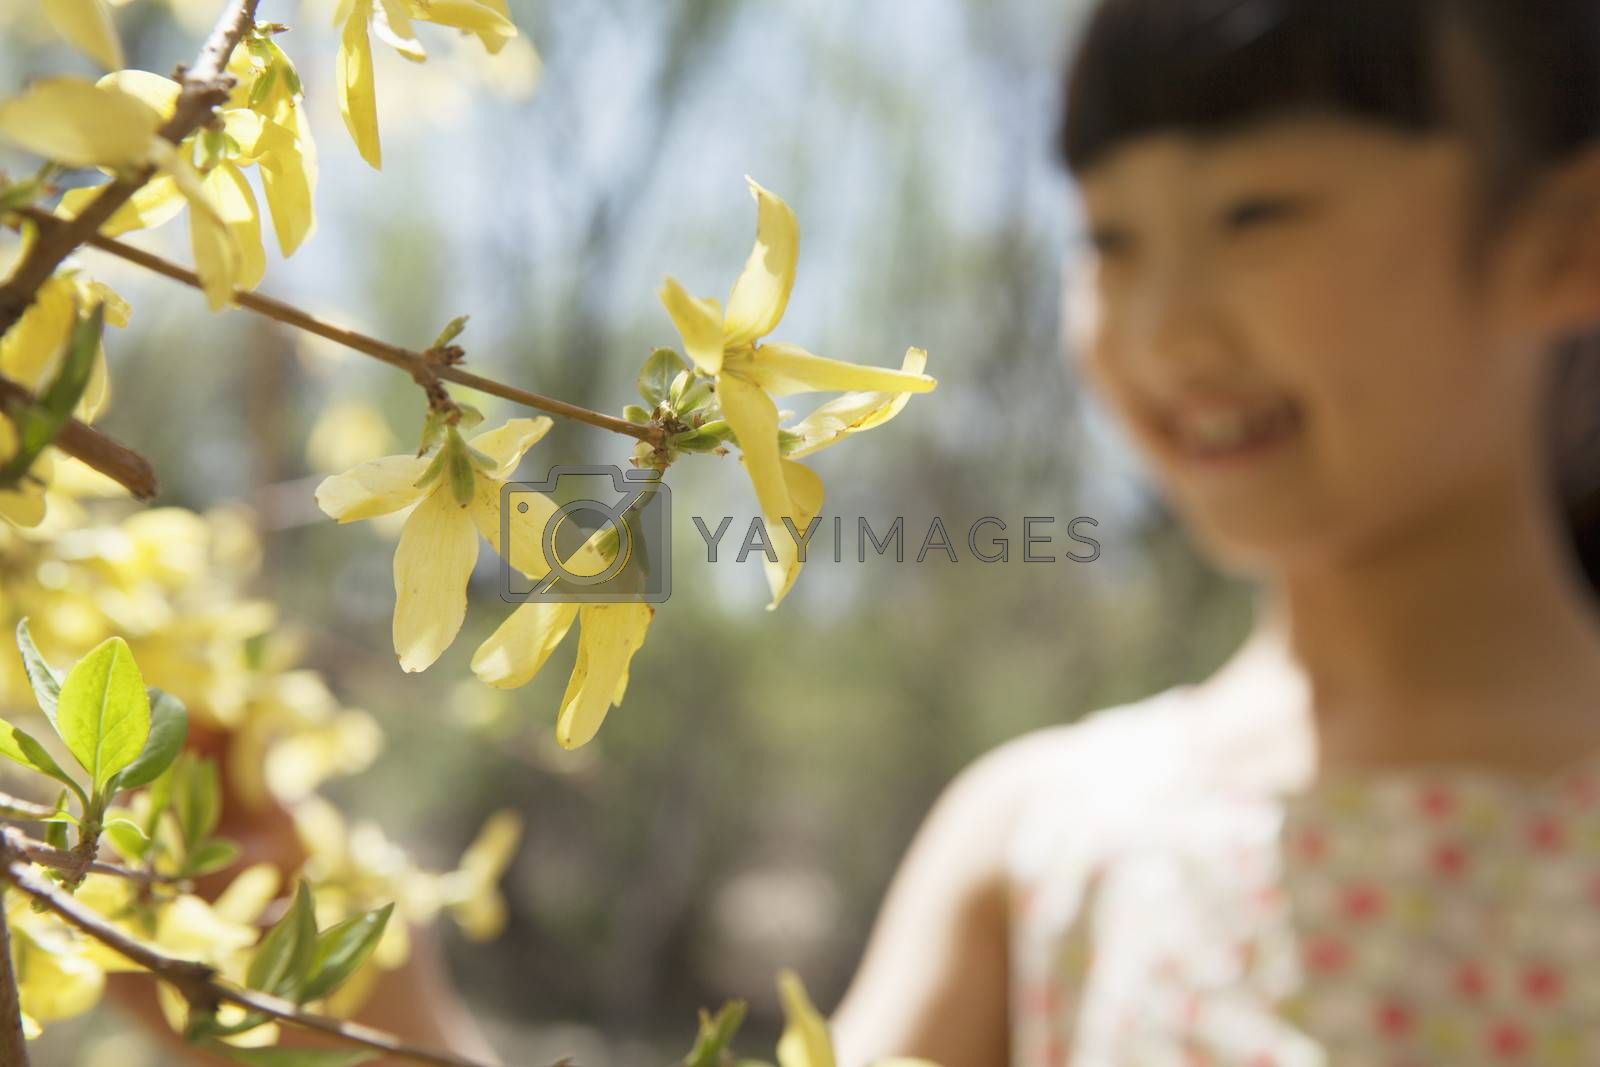 Smiling young girl looking at the yellow blossoms on the tree in the park in springtime